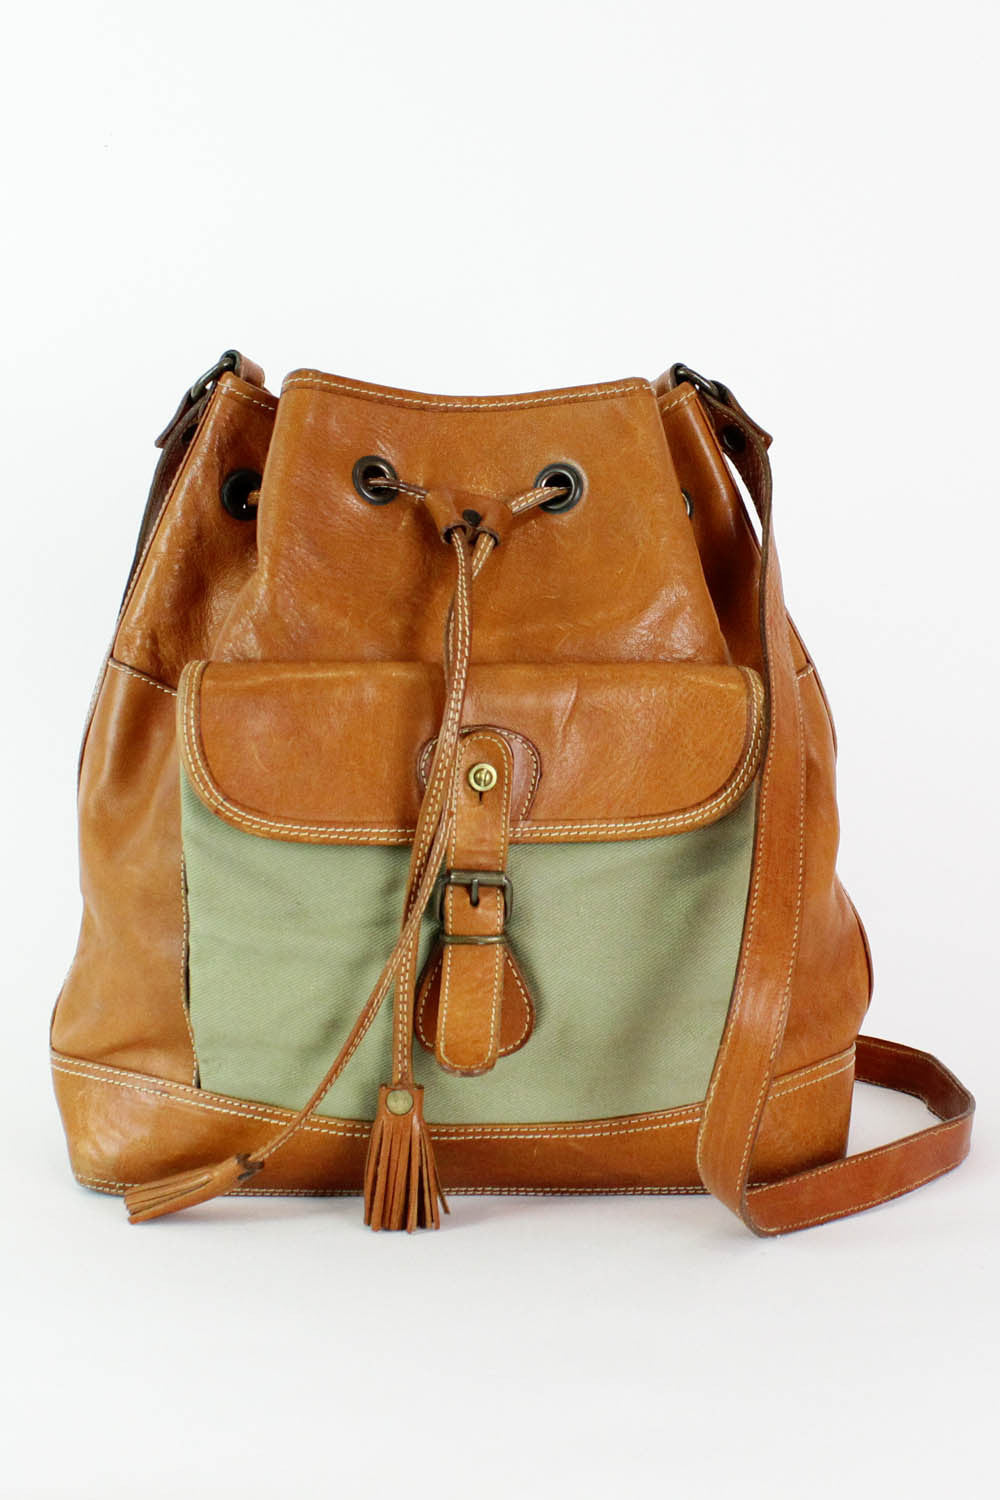 Vintage Ann Taylor Bucket Bag